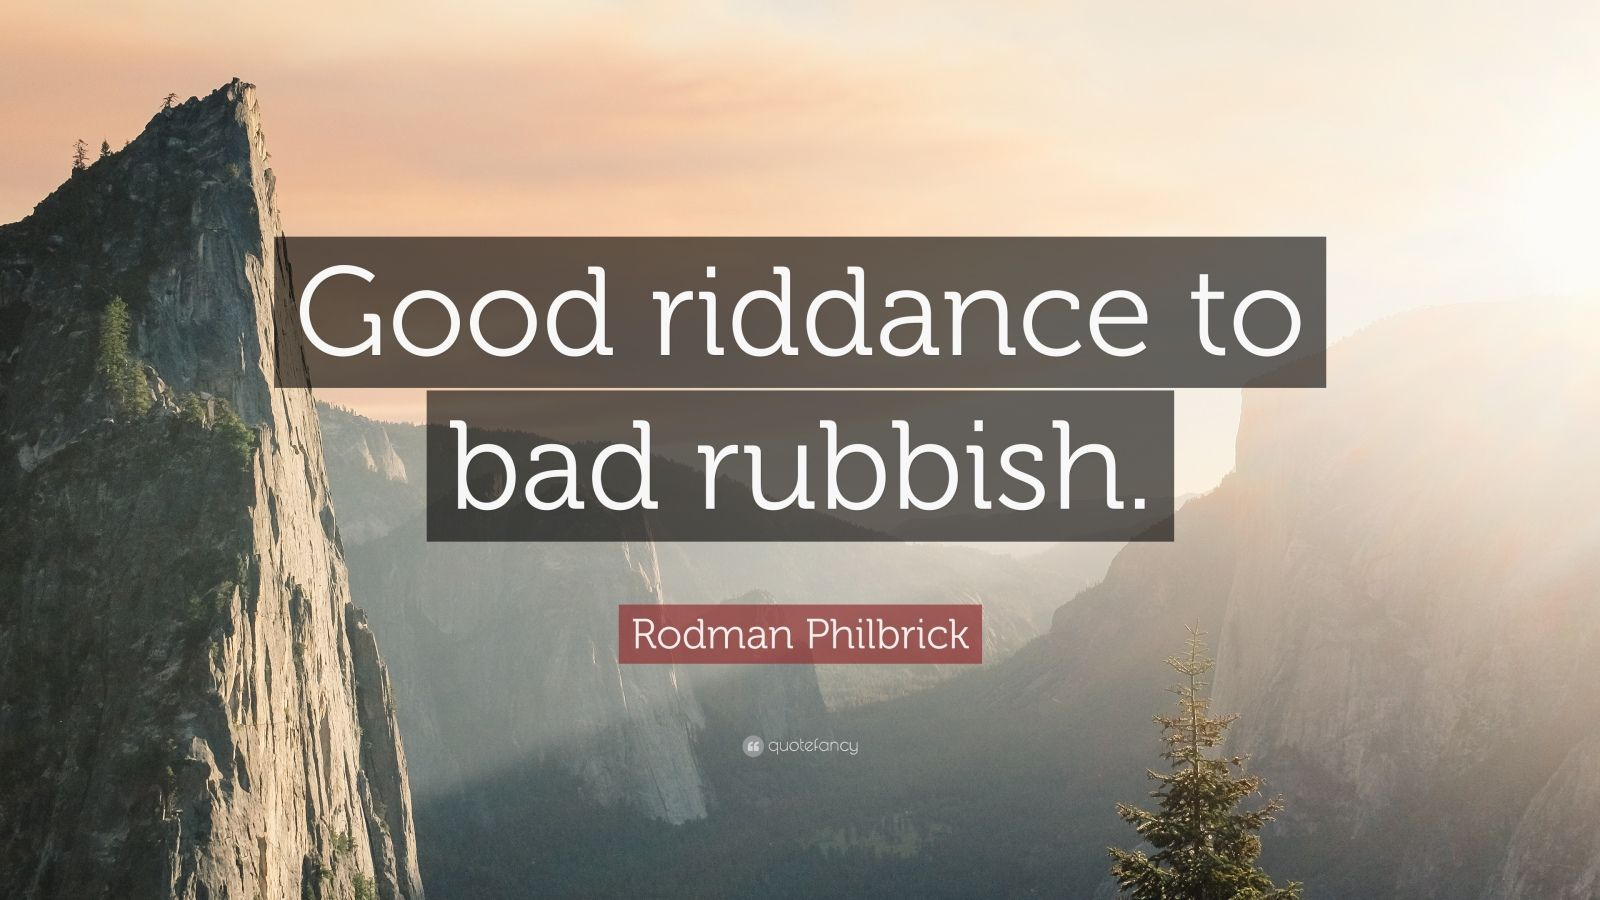 I Am Bad Quotes Wallpaper Rodman Philbrick Quote Good Riddance To Bad Rubbish